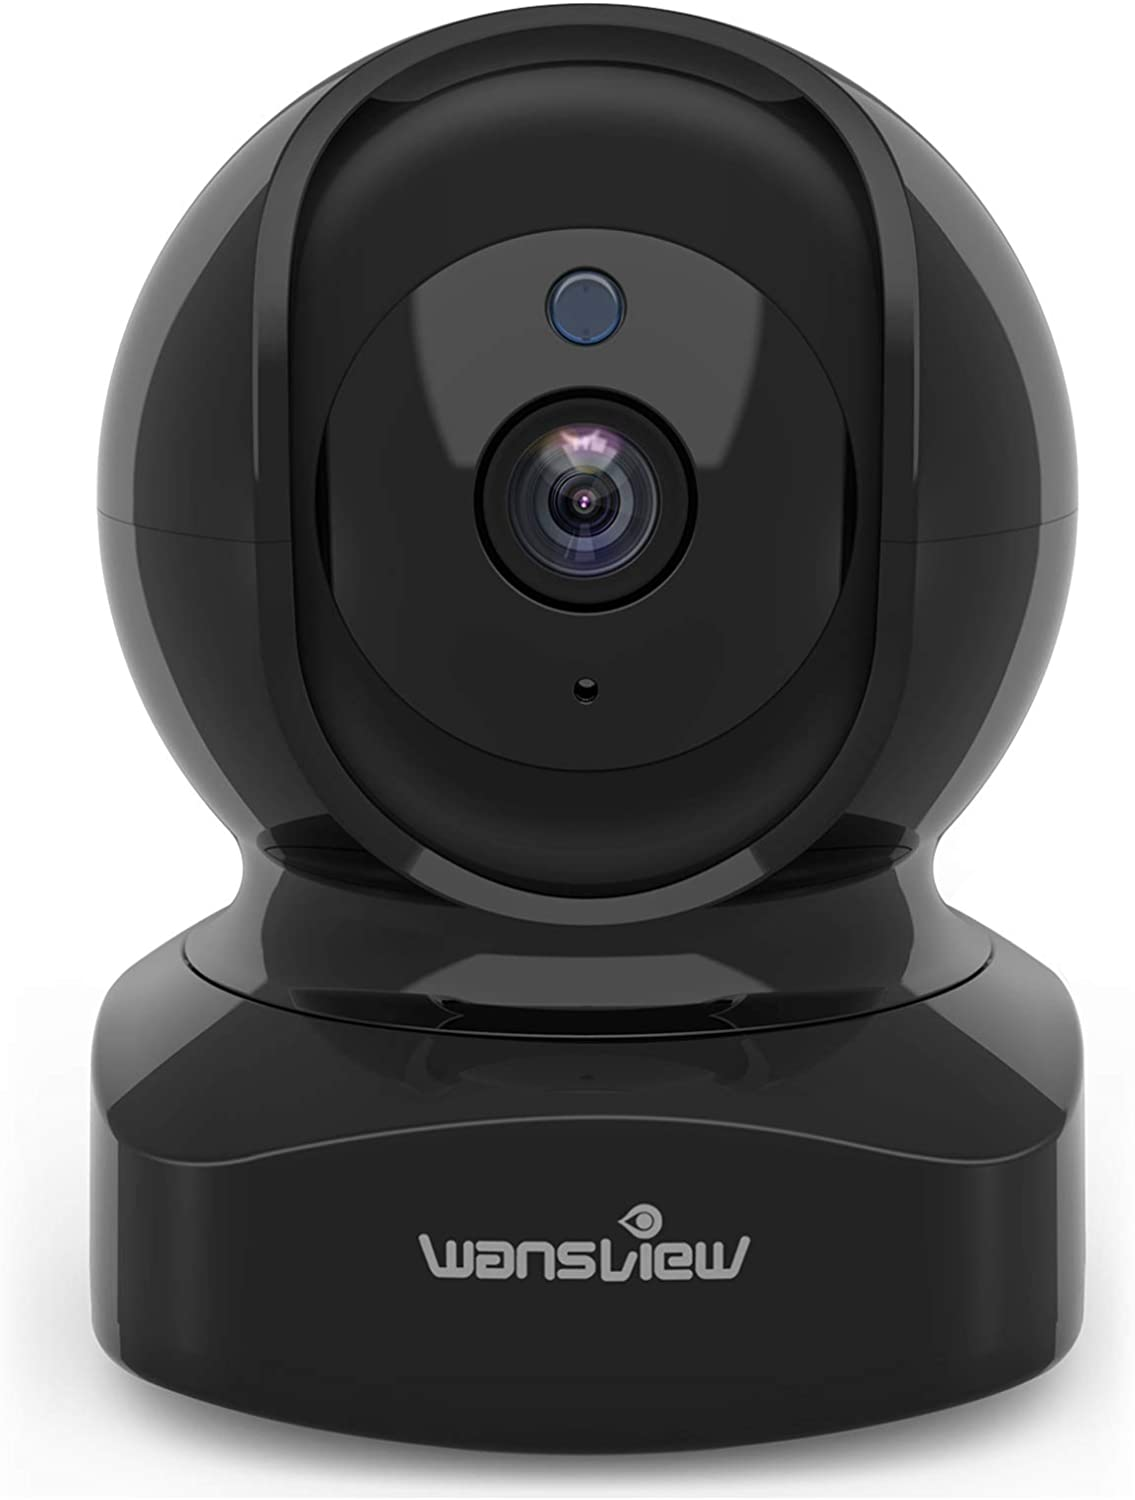 Home Indoor Camera for Baby/Pet/Nanny, Motion Detection, 2 Way Audio Night Vision